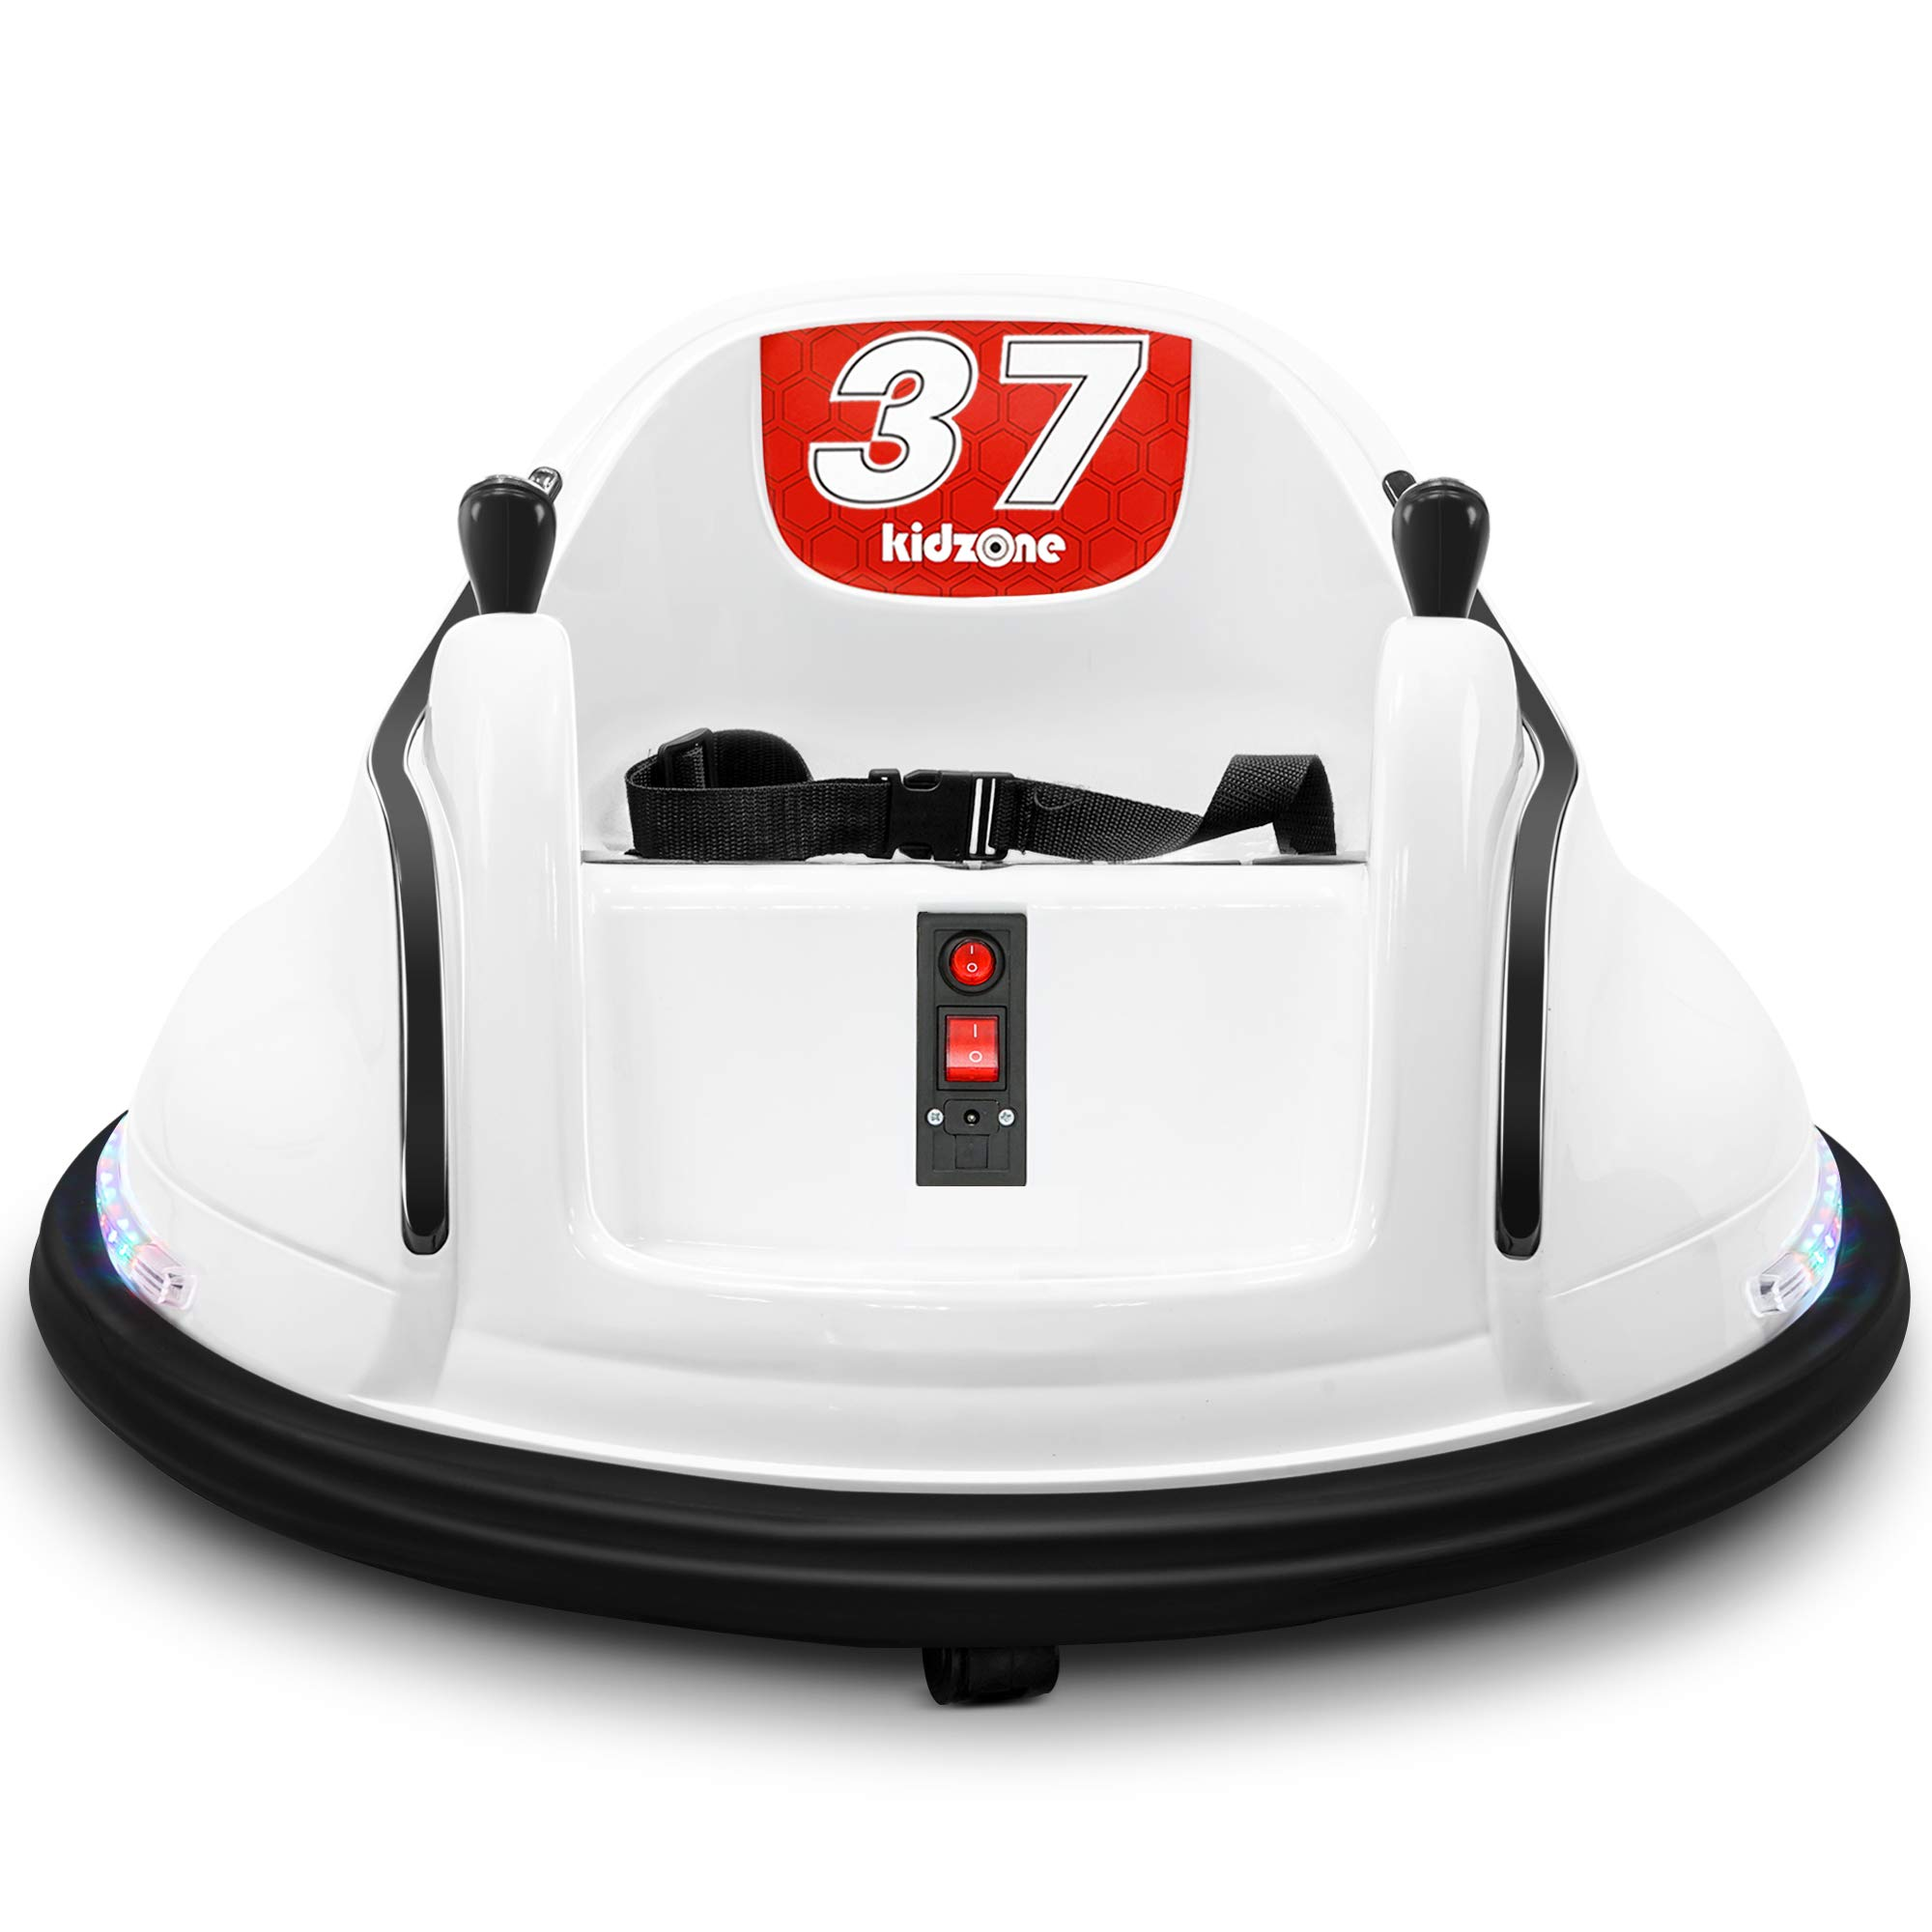 Kidzone Race #37/#73 Ride On Bumper Car 360 Degree Spinning Toy for Toddlers Aged 1+ 6V Battery-Powered with LED Light for Boys & Girls, White